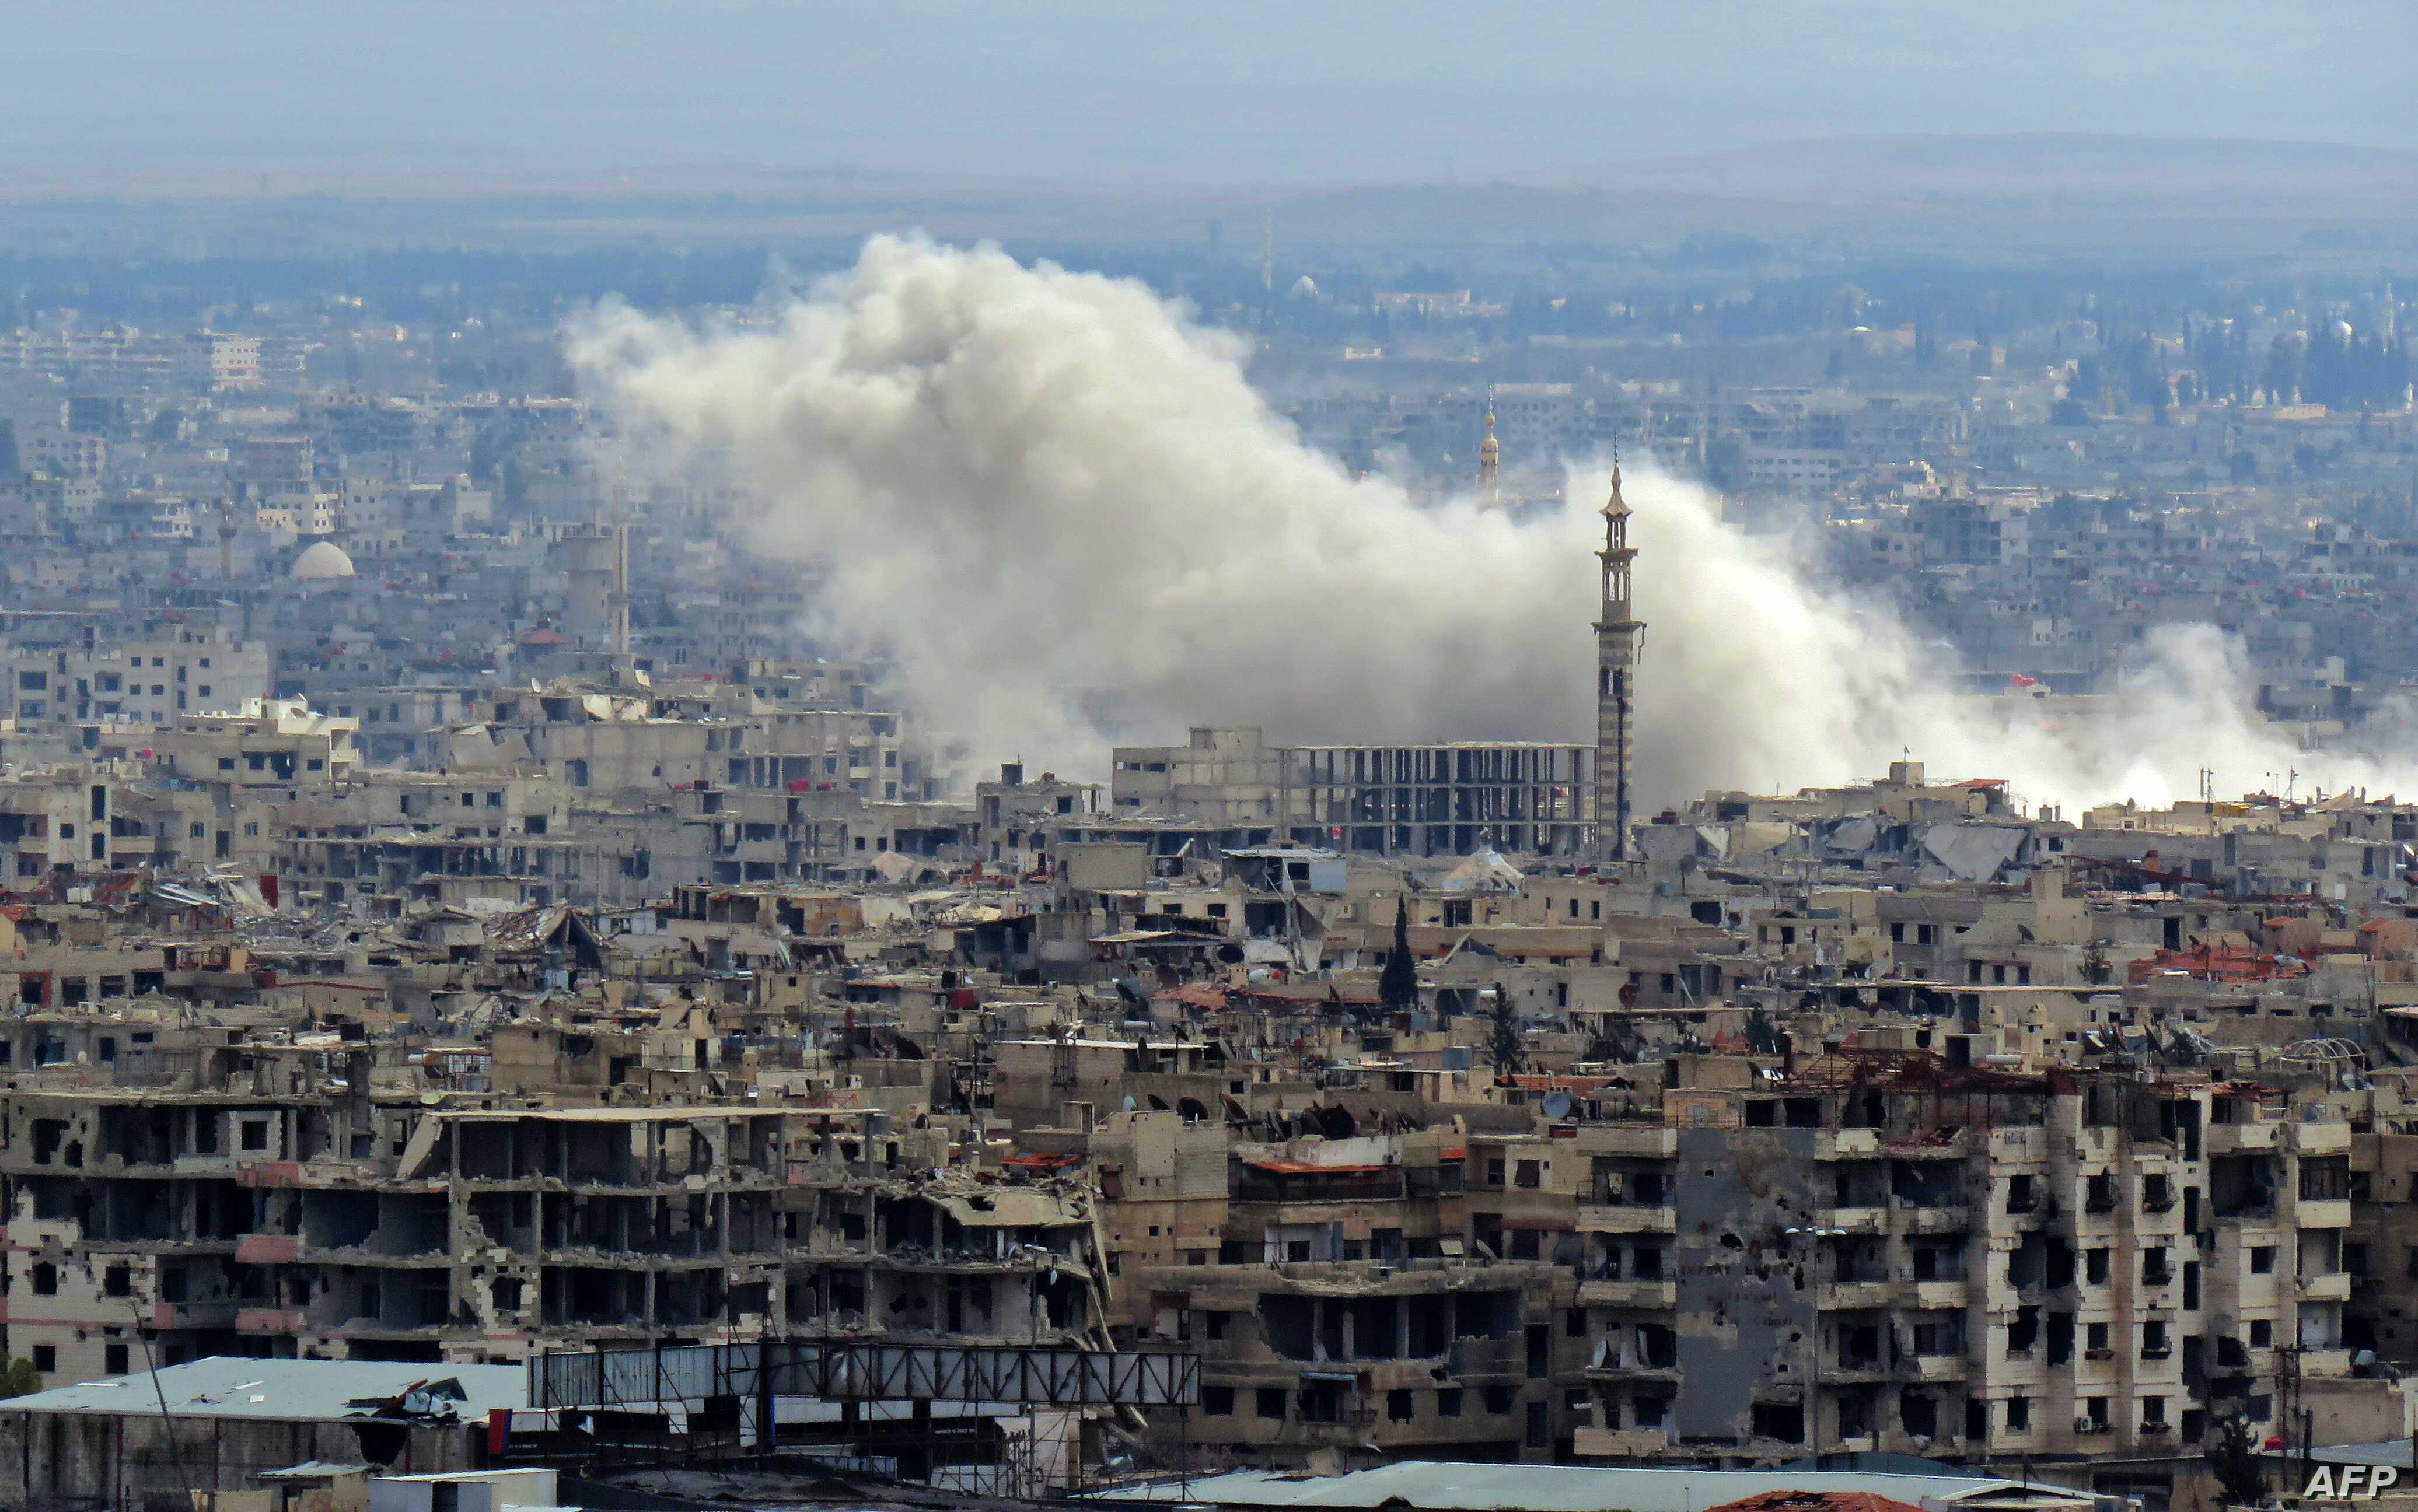 A general view taken from a government-held area in Damascus shows smoke rising from the rebel-held enclave of Eastern Ghouta on the outskirts of the Syrian capital following fresh air strikes and rocket fire on February 27, 2018.